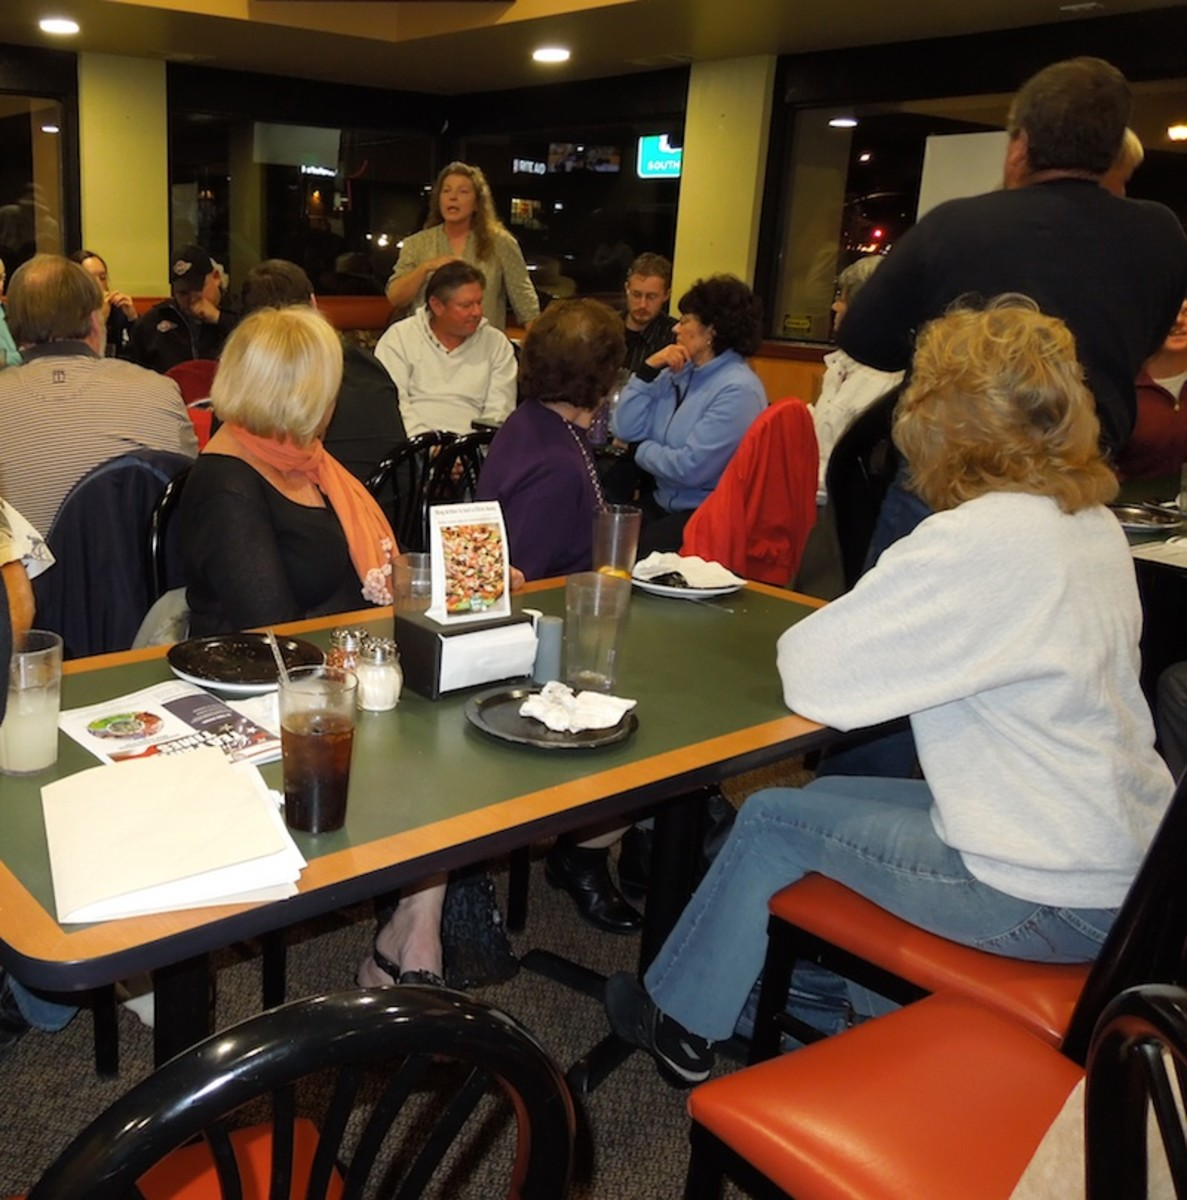 This is a political meeting at a local pizza parlor. I wanted to go because of the content of the meeting (and the pizza), but not much was demanded in the way of social interaction.